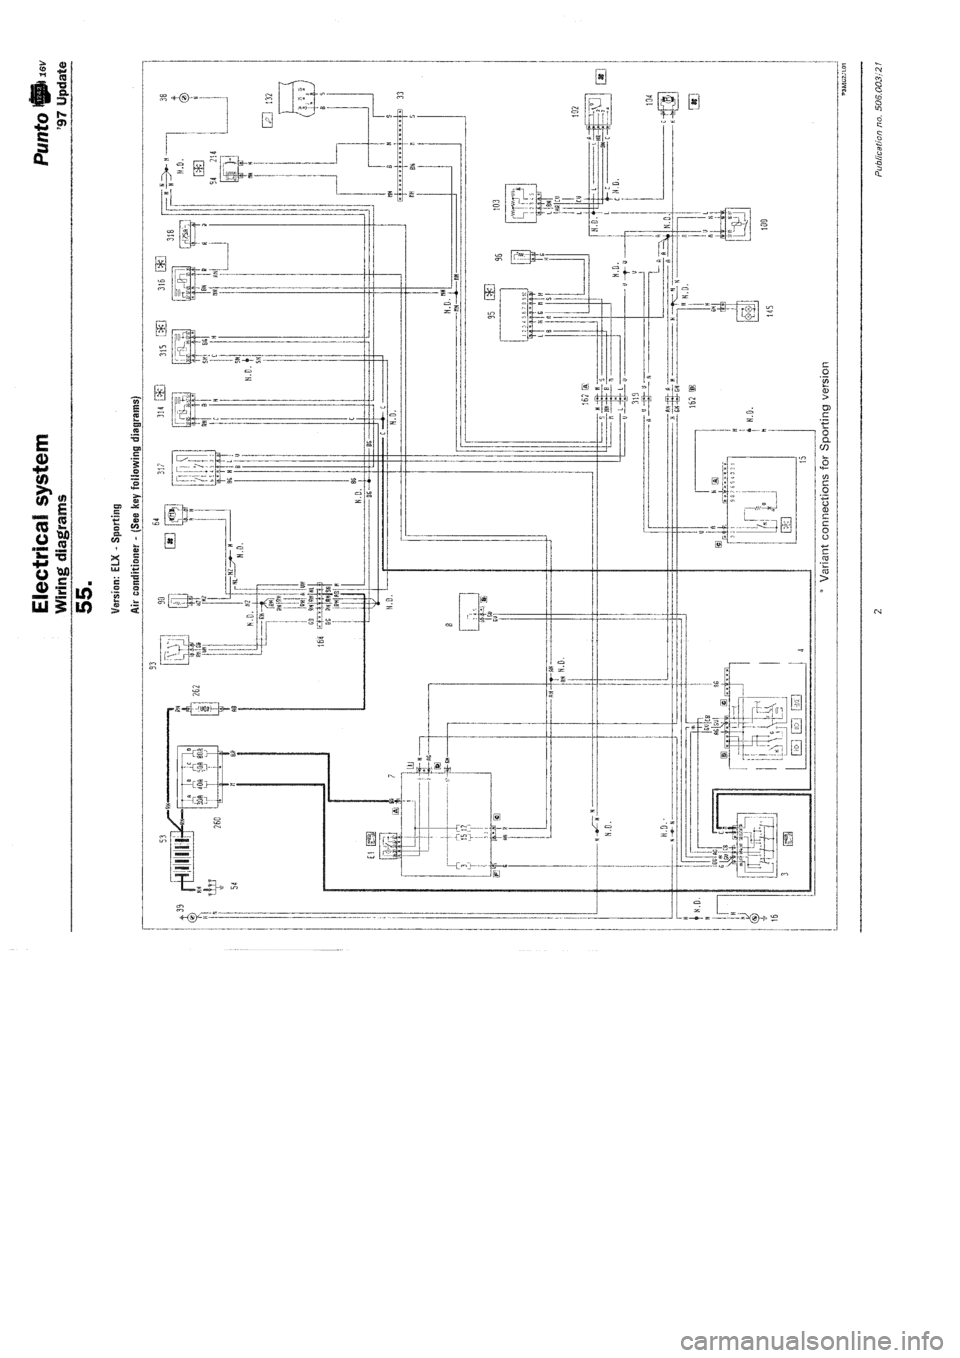 w960_4692 2 fiat punto 1997 176 1 g wiring diagrams workshop manual fiat grande punto wiring diagram pdf at soozxer.org